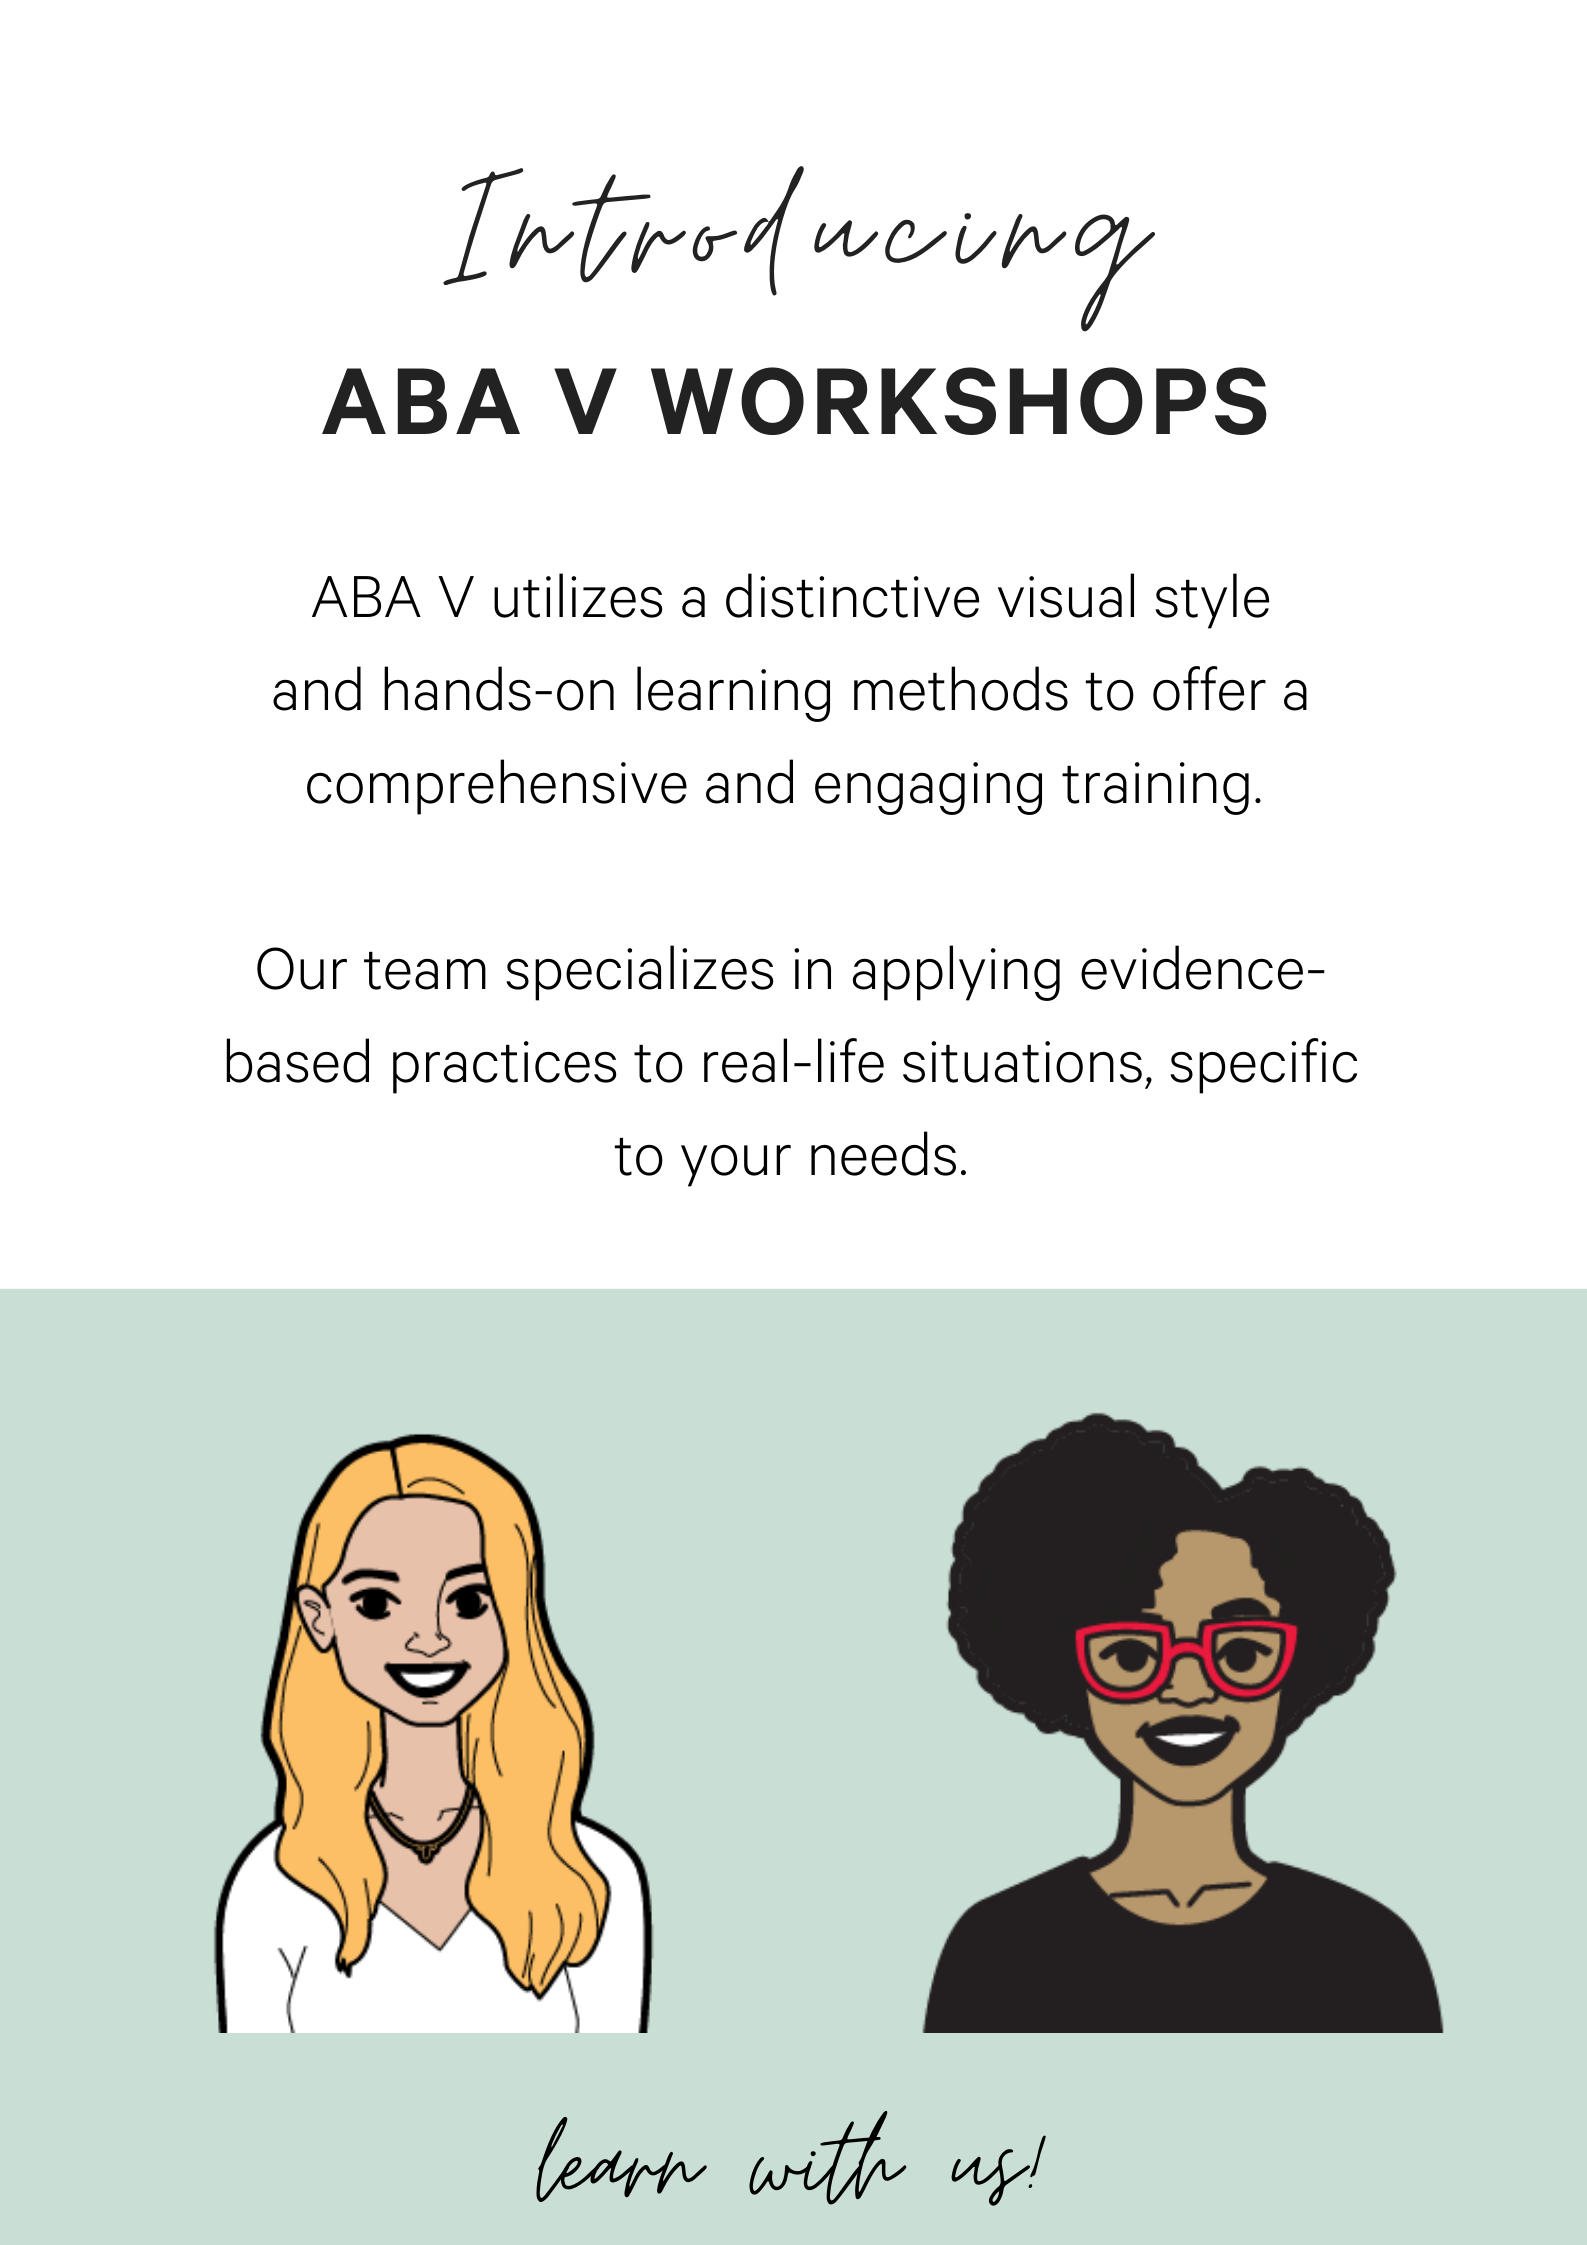 ABA Workshop